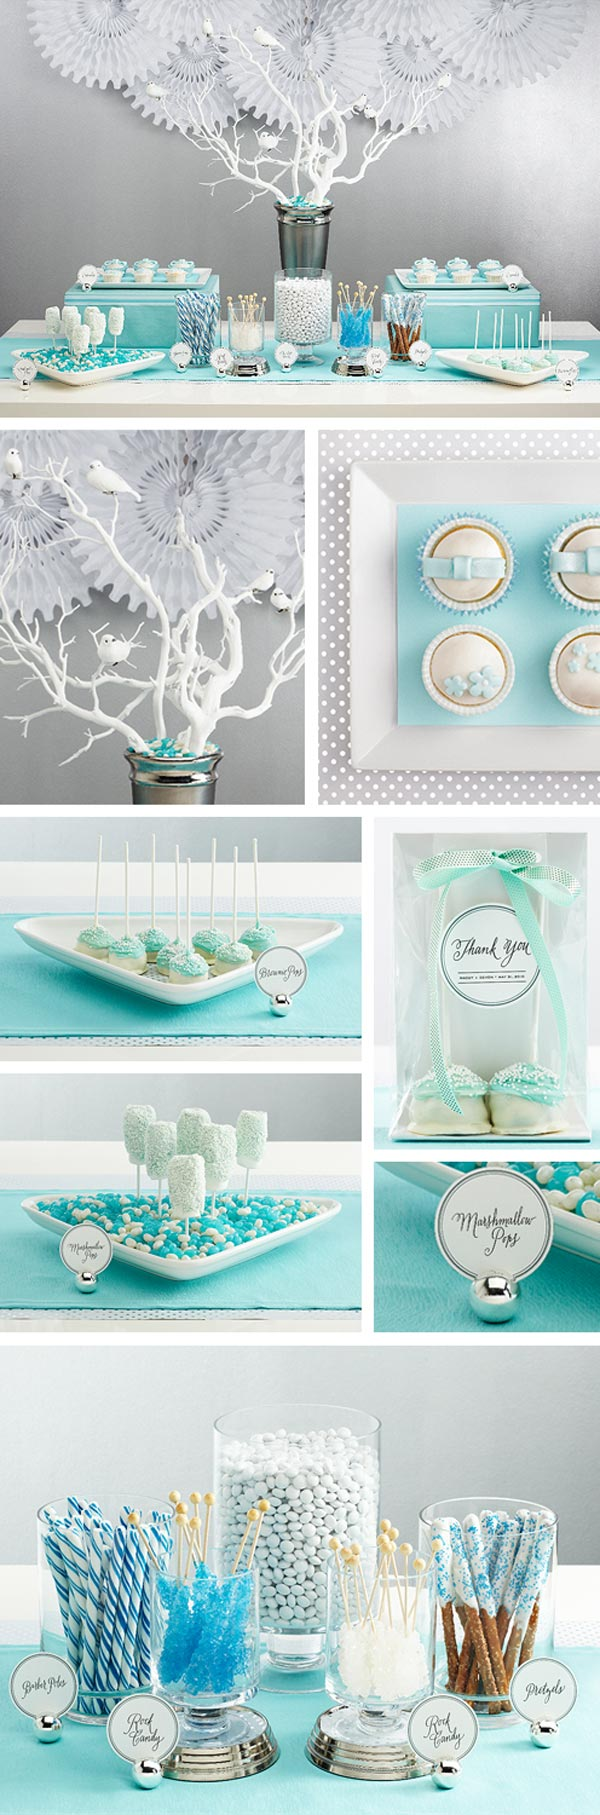 Baby shower decor ideas arhitektura for Baby boy baby shower decoration ideas